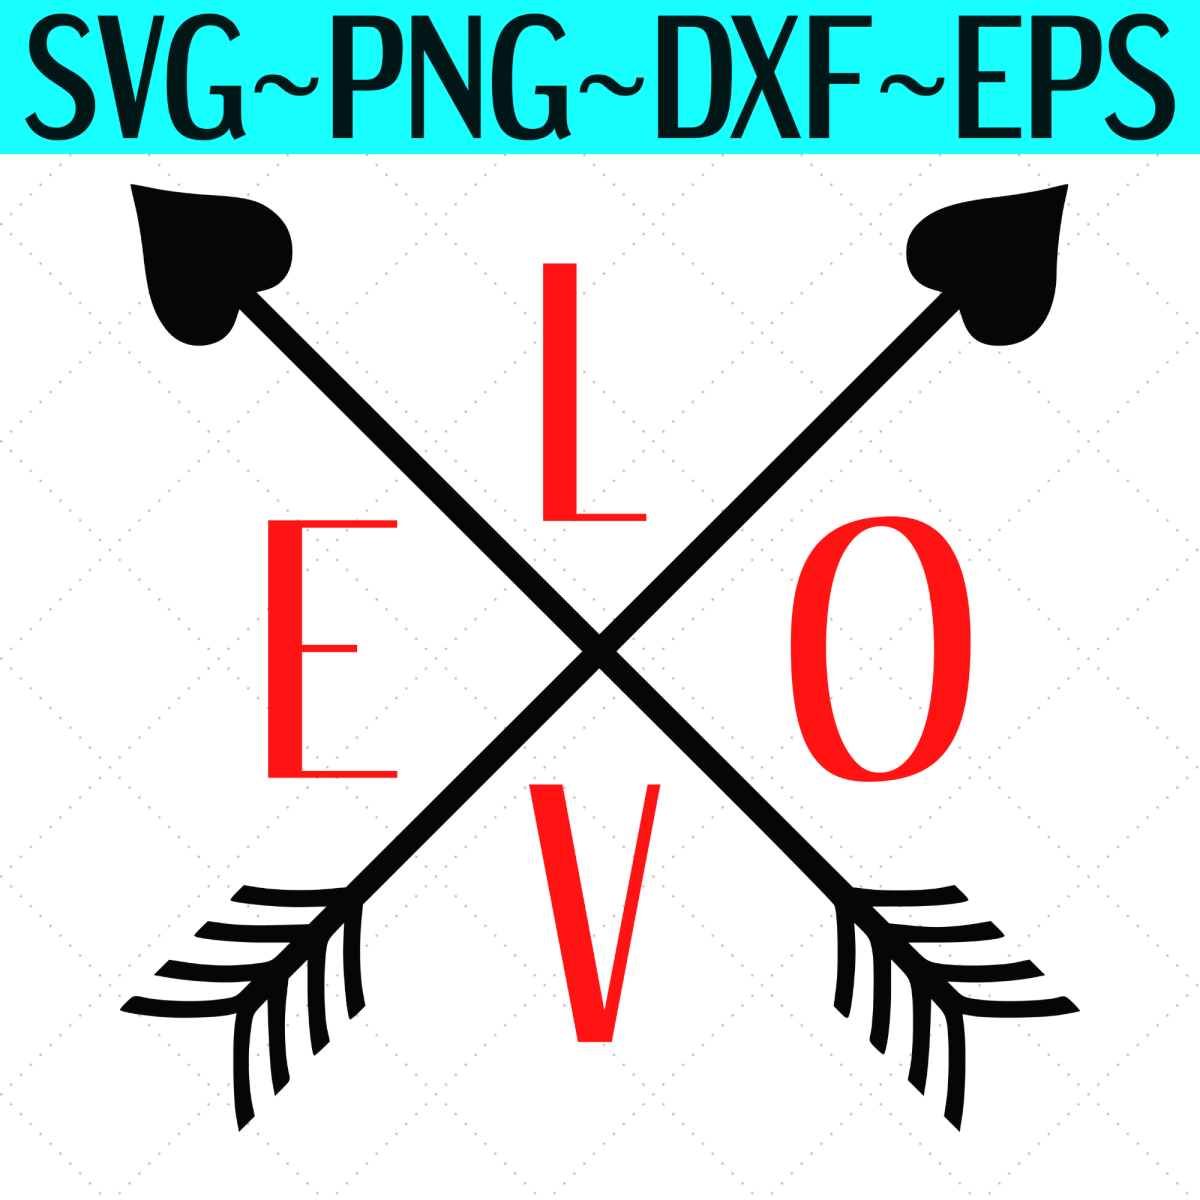 Download Love Arrows SVG in 2020 (With images) | Arrow svg, Svg, Arrow